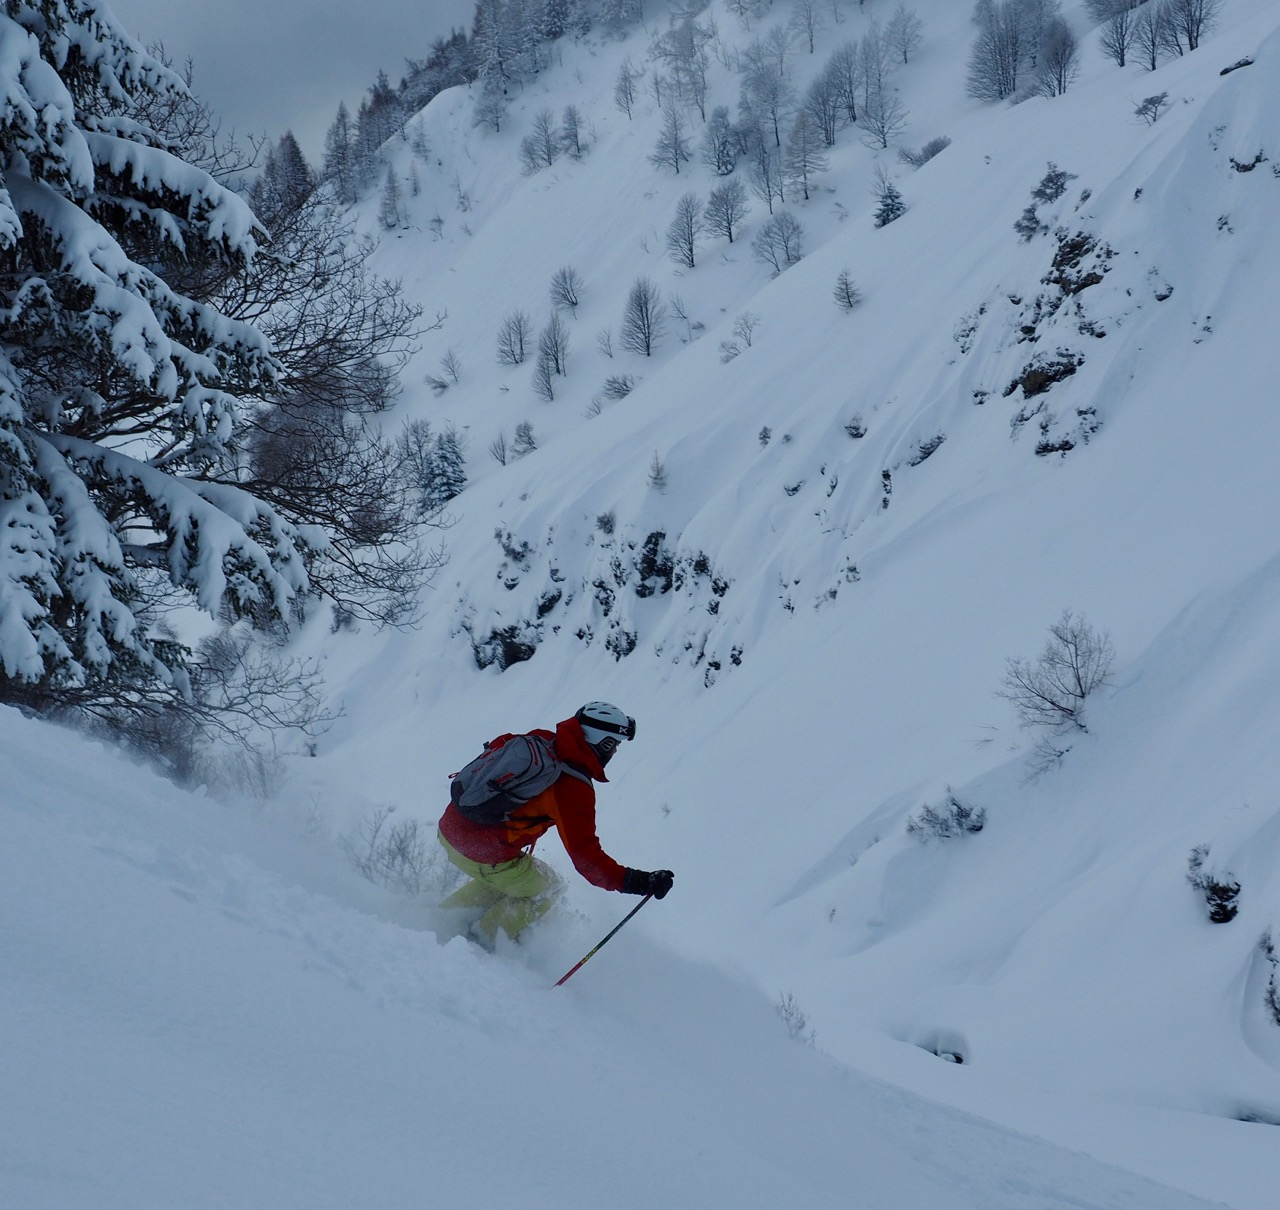 Ski tours for the New Year: a selection of sites